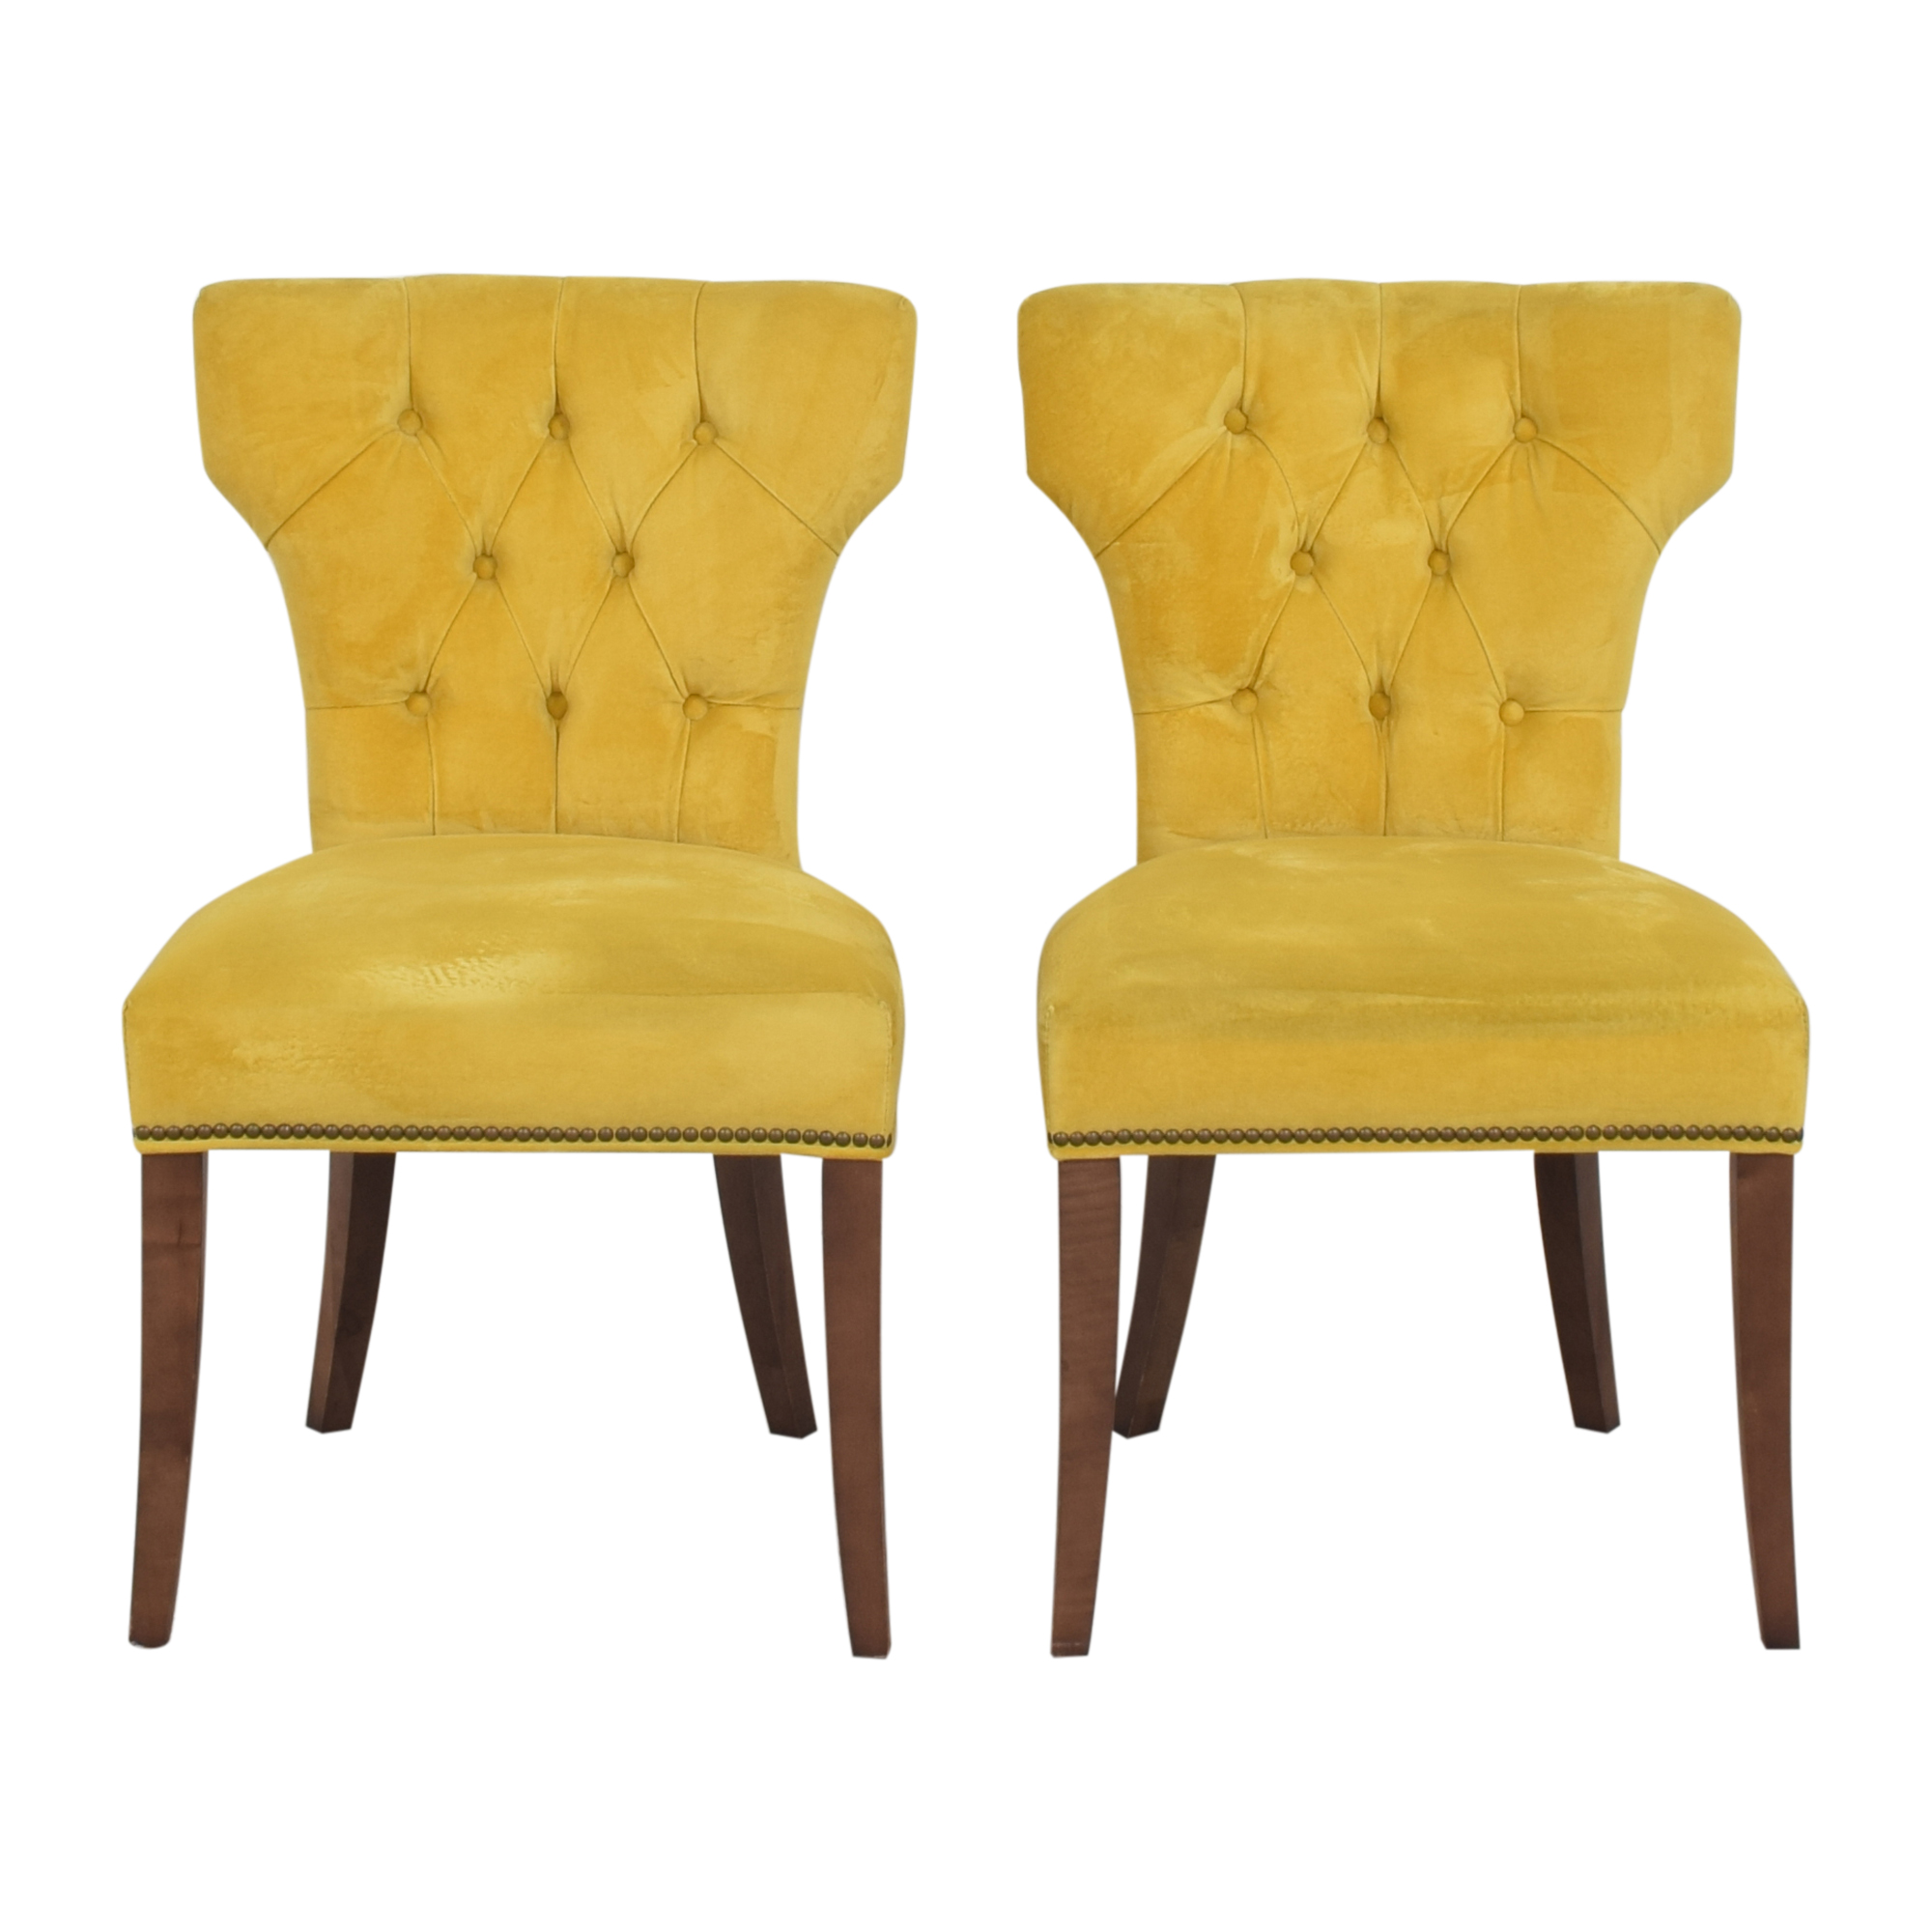 Lillian August Lillian August Farmhouse Yellow Kitchen Chairs second hand